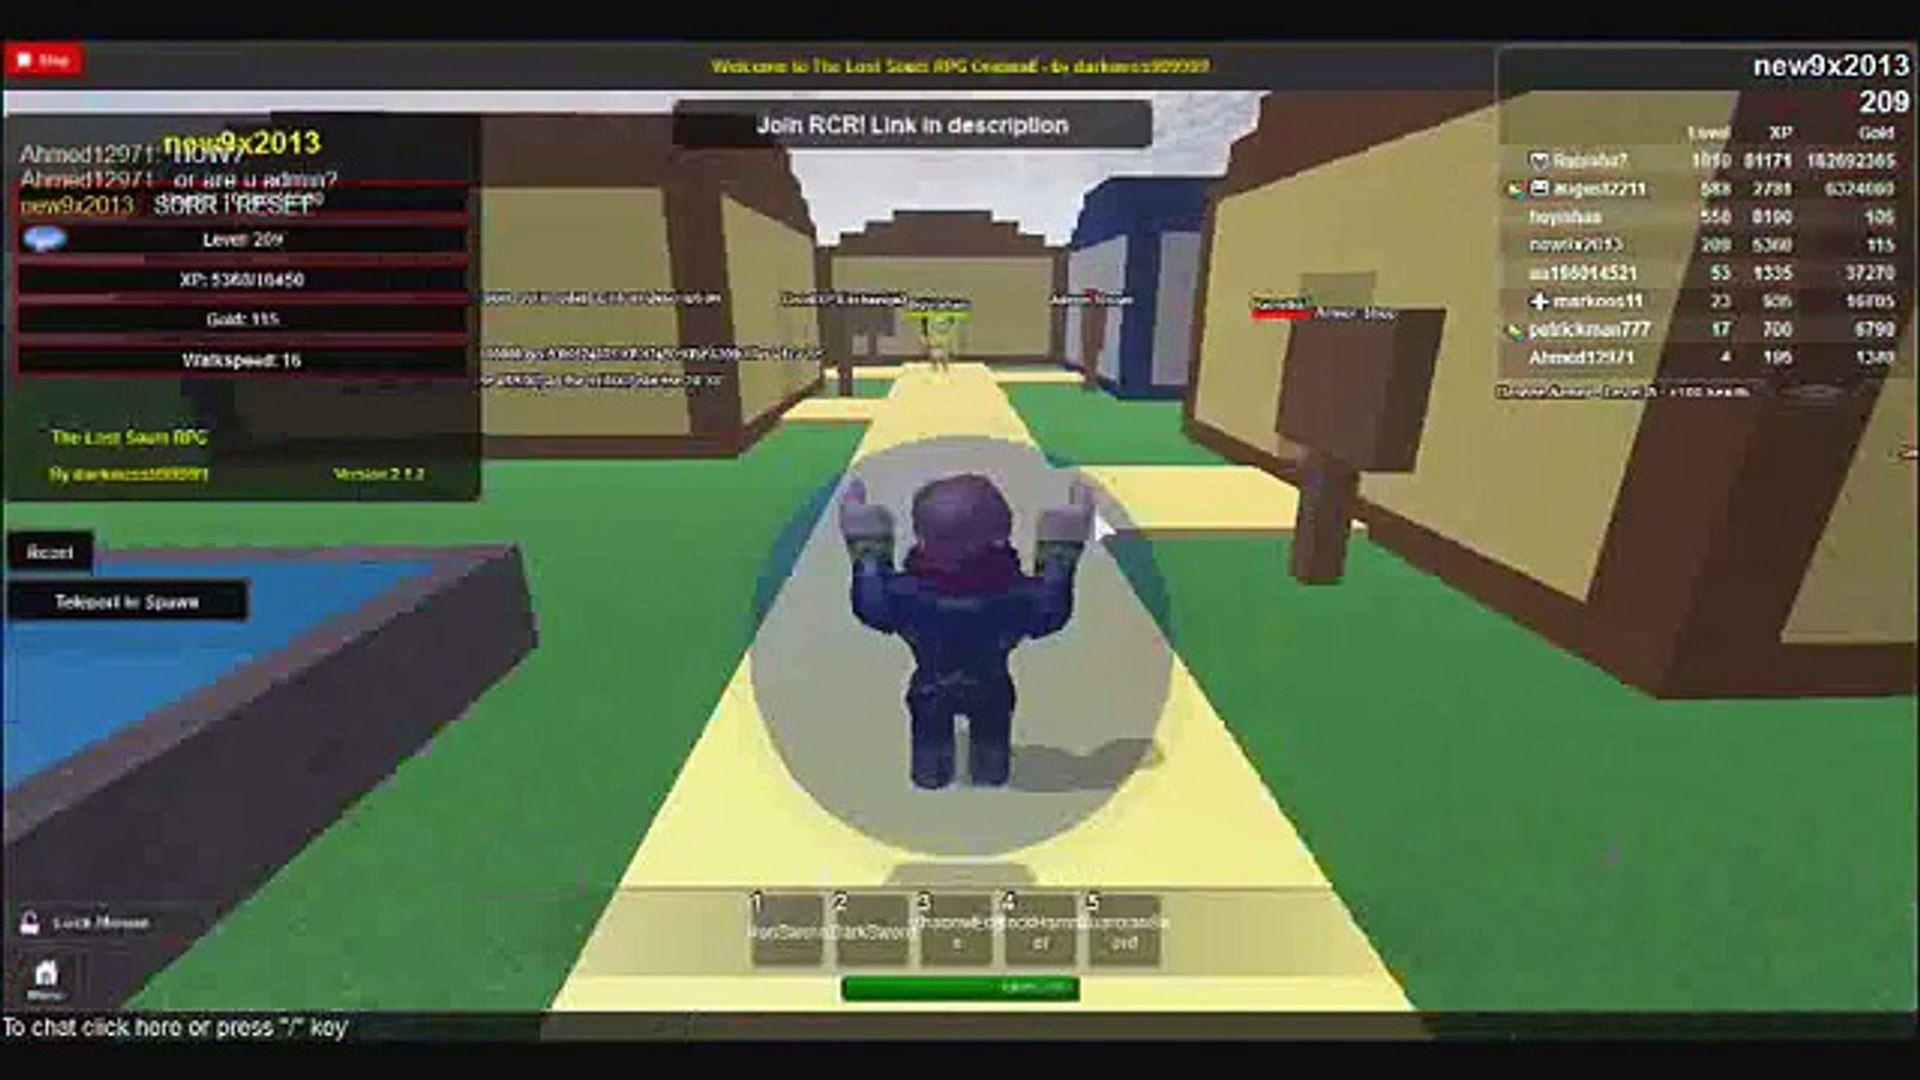 Roblox Admin Command Hack 2015 - New9x2013s Roblox Video How Make Go To Admin Room Free